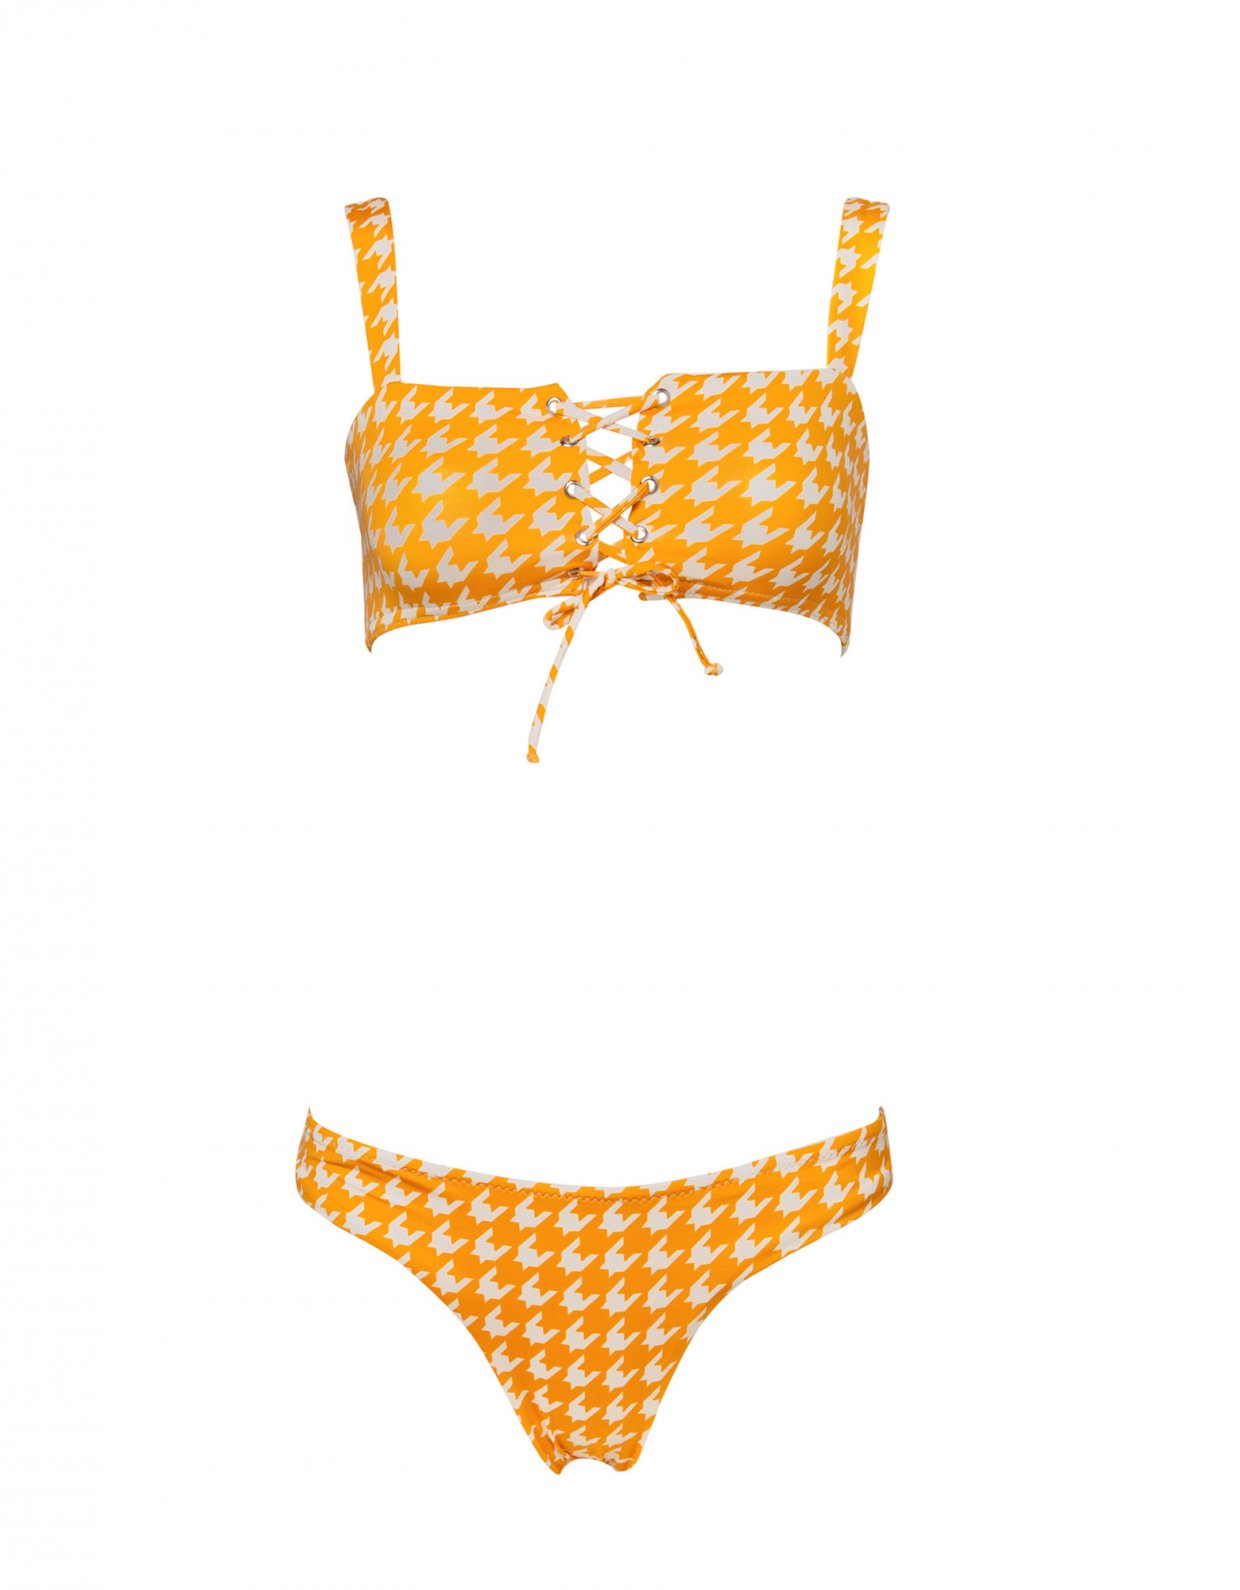 Lookseri swimwear Maya bikini frenchie